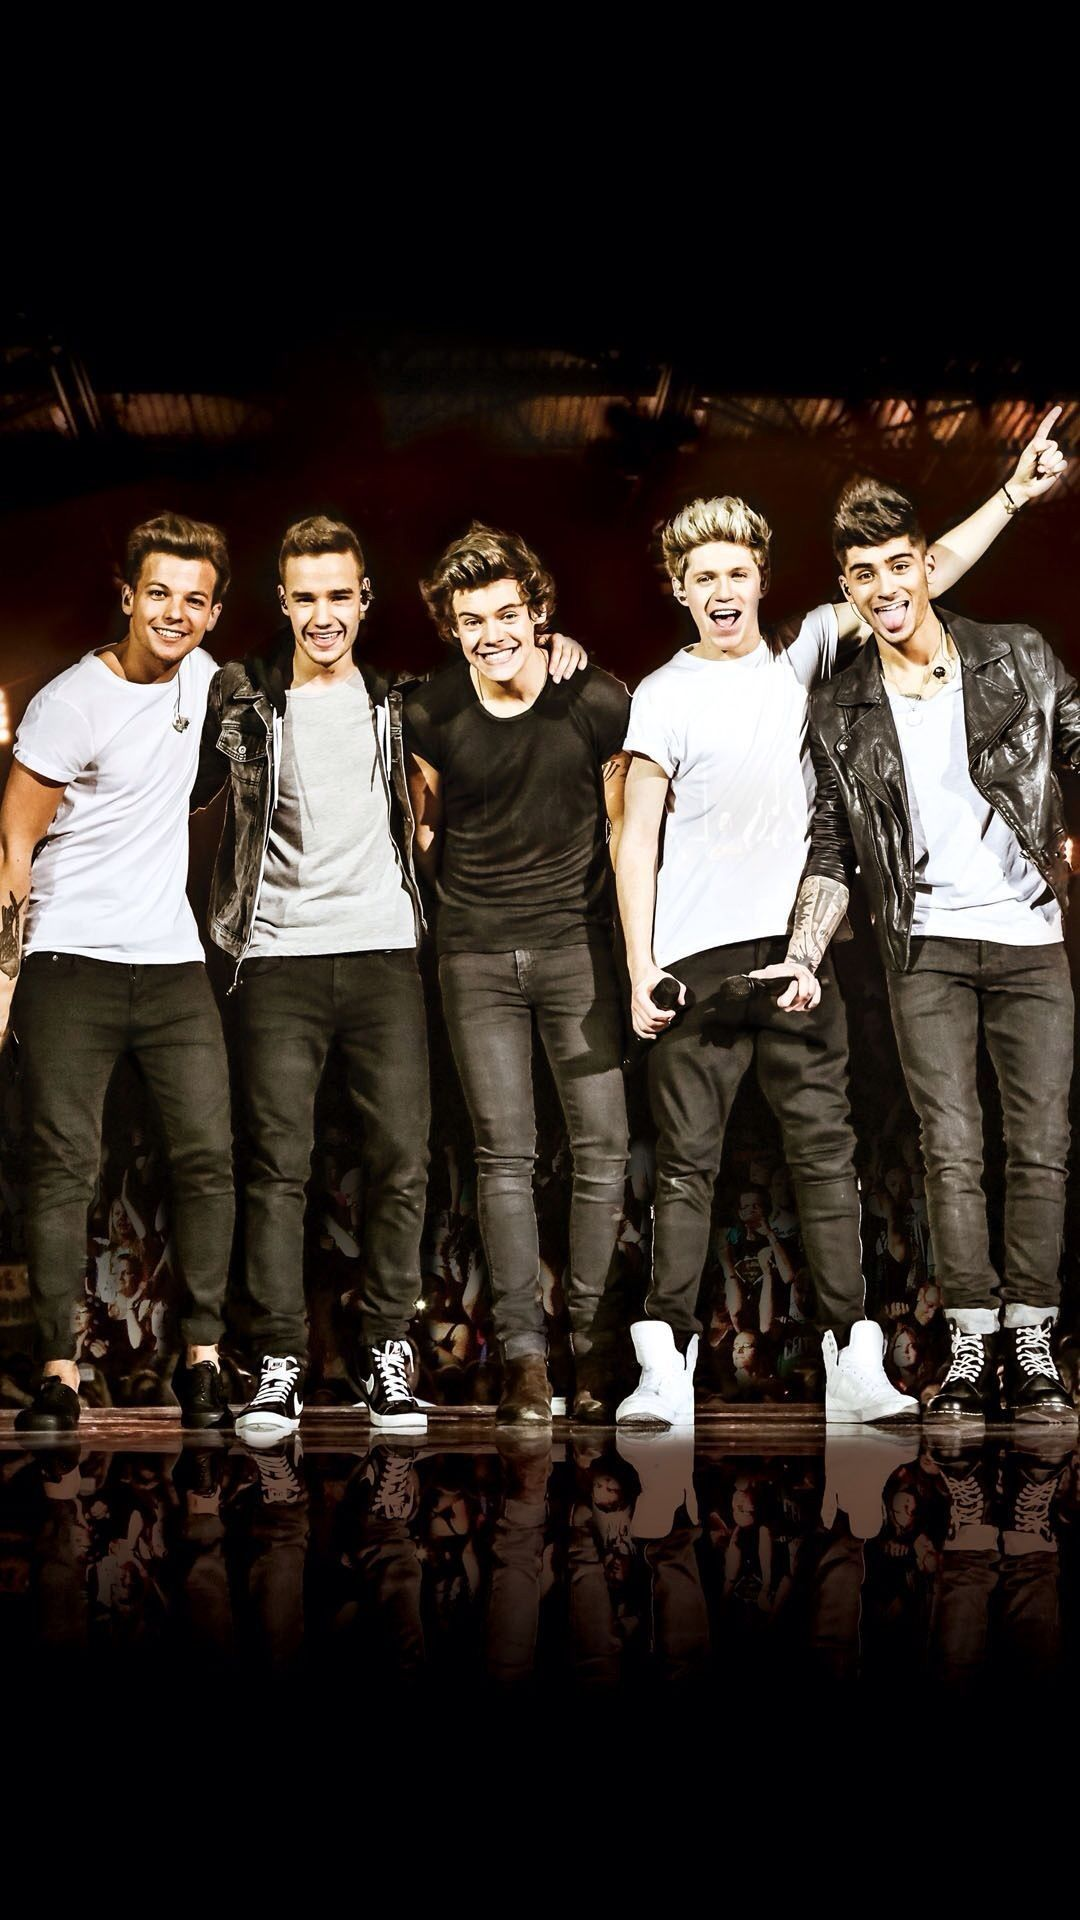 Best Of One Direction Wallpaper Iphone Onedirection2014 In 2020 One Direction Tickets One Direction Photos One Direction Wallpaper